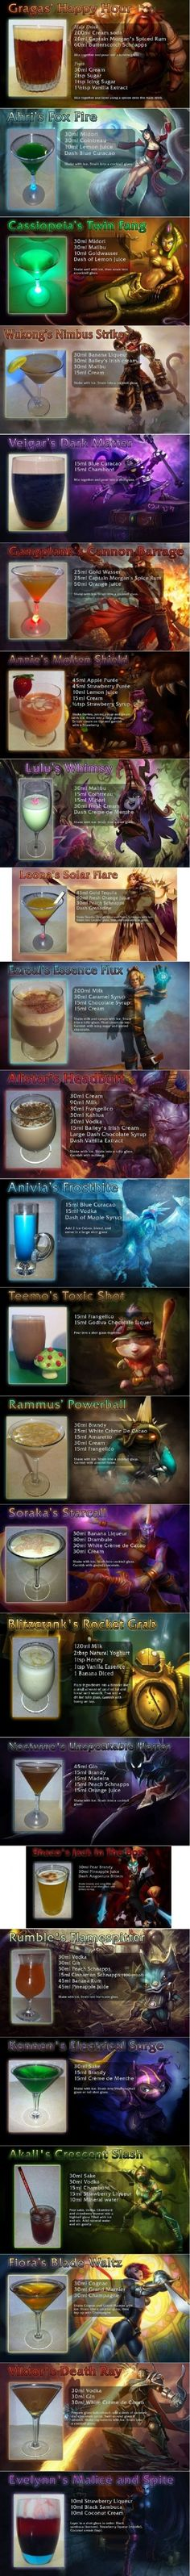 Gaming Inspired Drinks